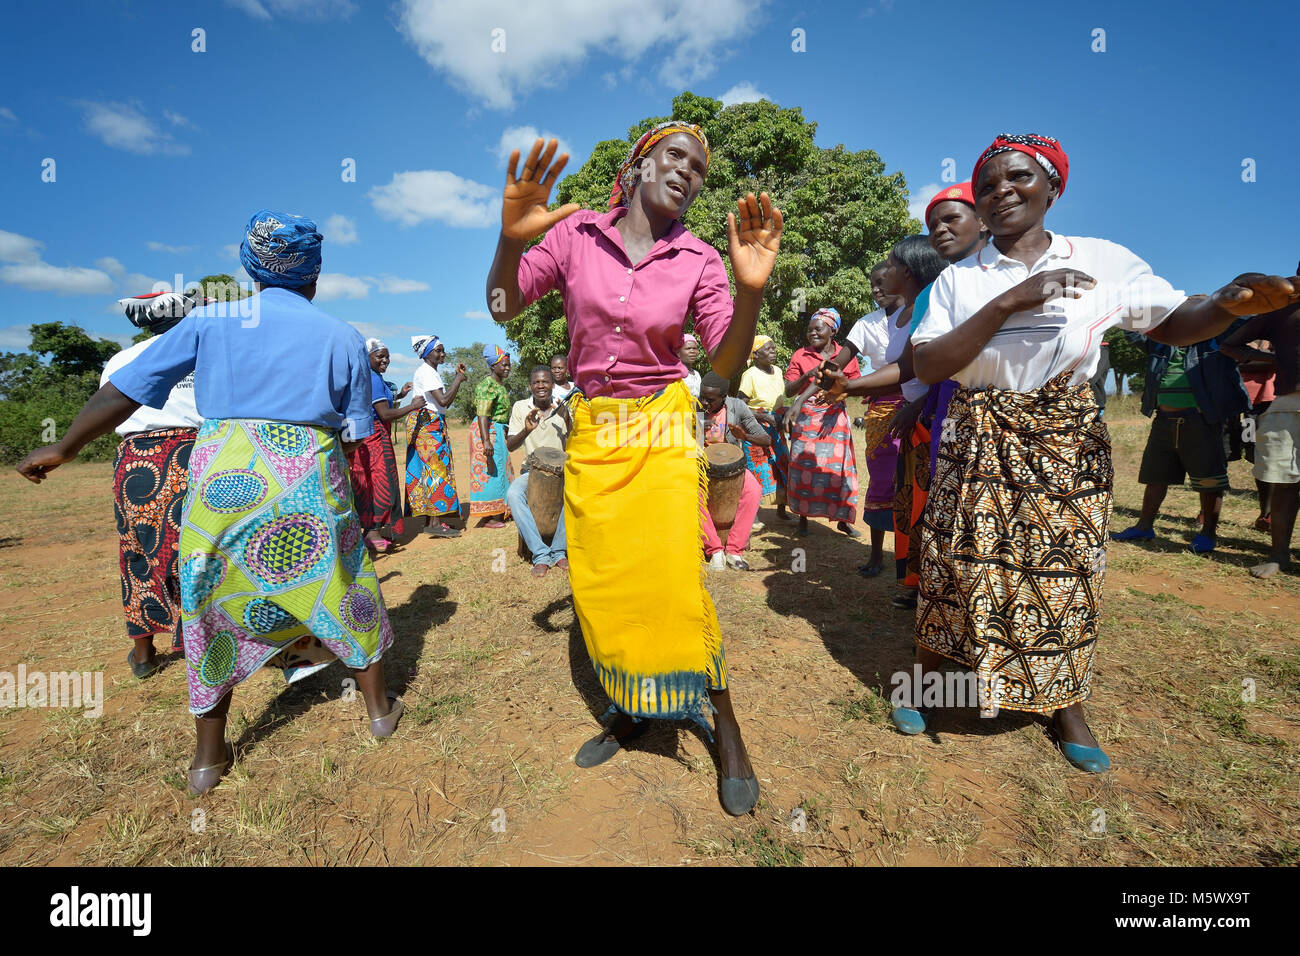 Women sing and dance as part of an education program promoting proper prenatal care and maternal health in Kayeleka - Stock Image